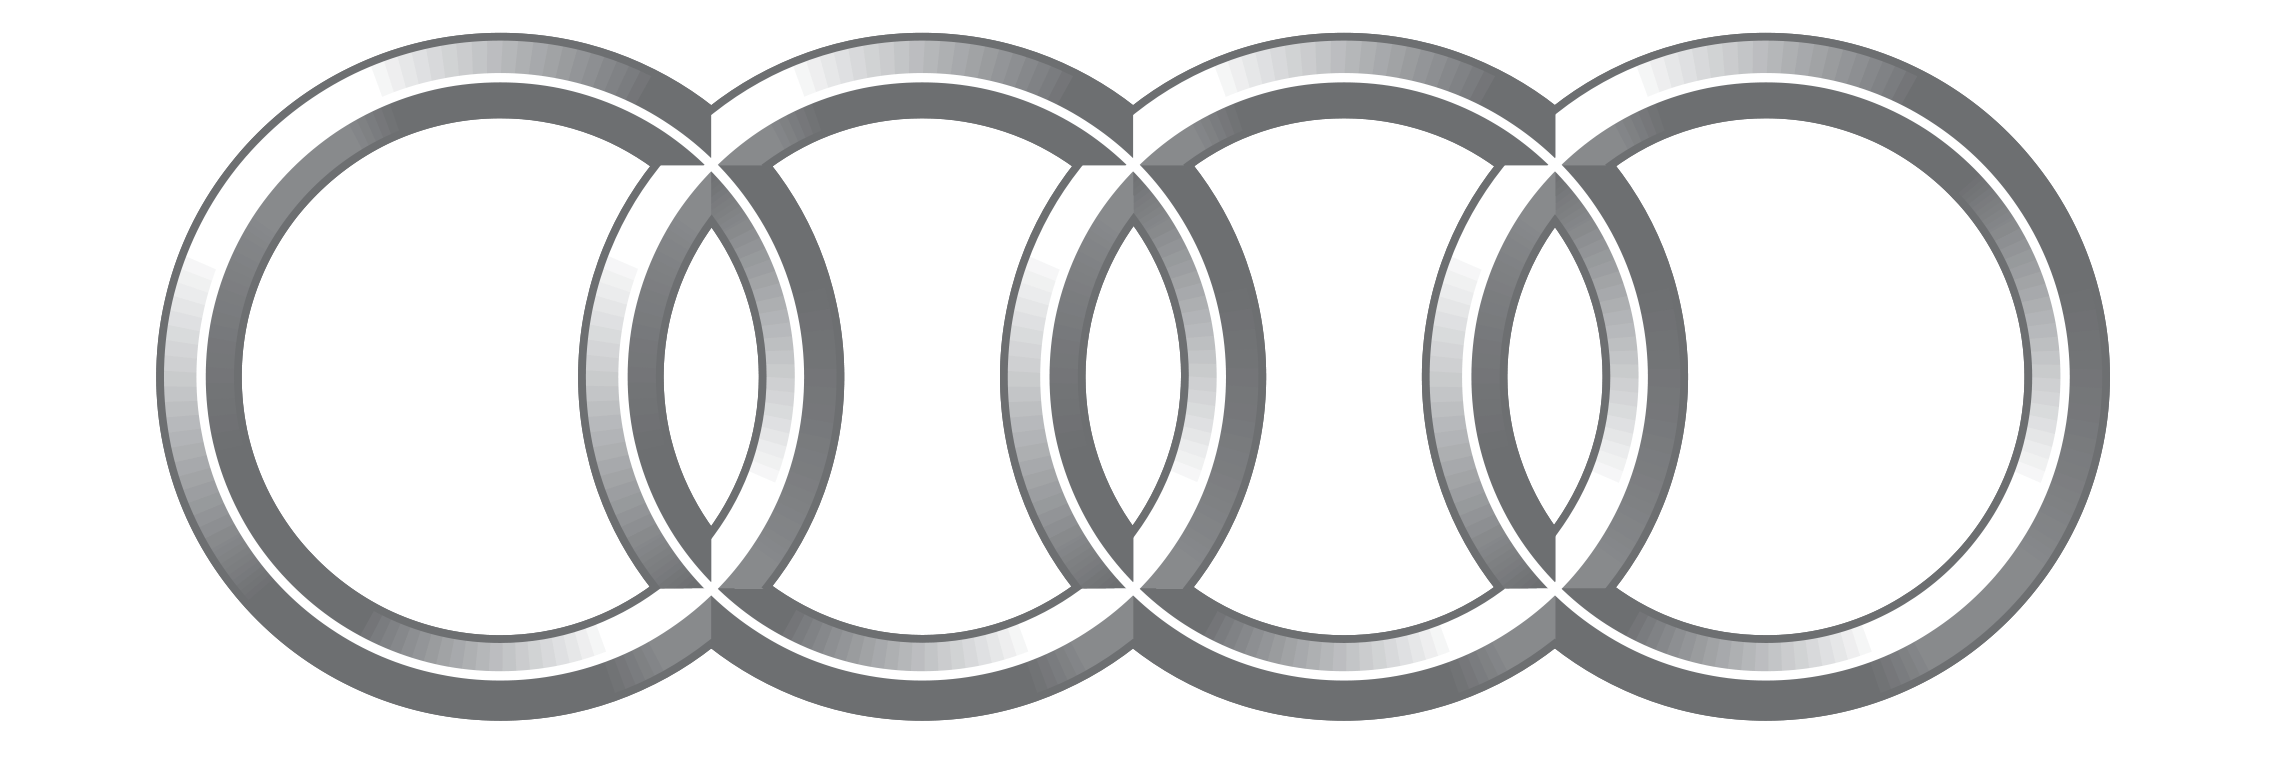 Audi Logo - Audi Logo Meaning and History. Symbol Audi | World Cars Brands